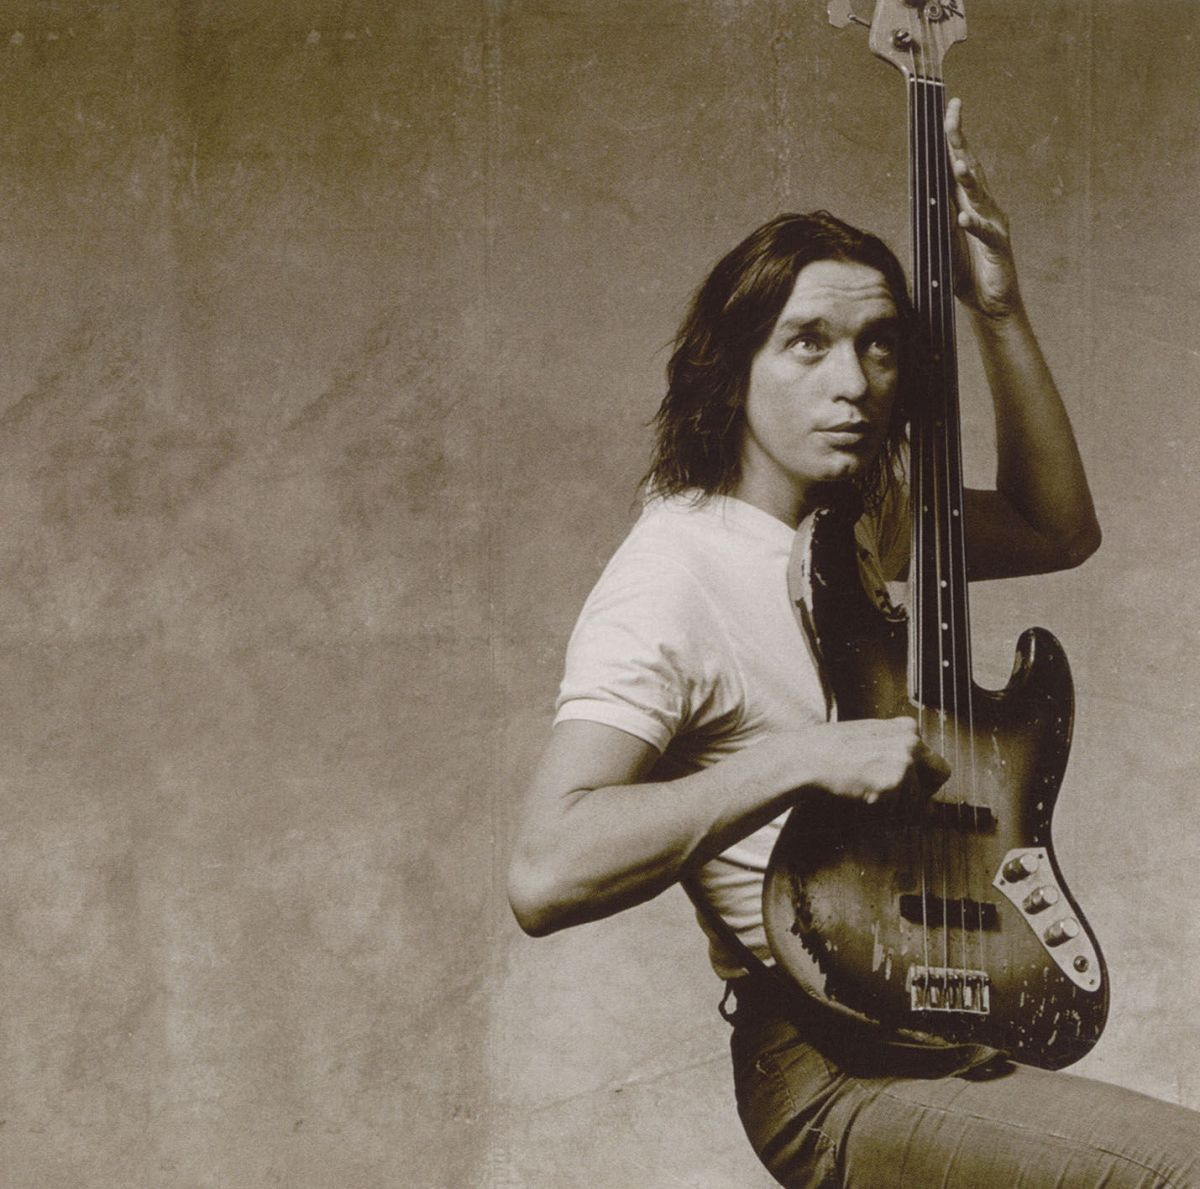 Film Director Paul Marchand Talks About His Documentary on the Life of Jaco Pastorius. FullInterview.